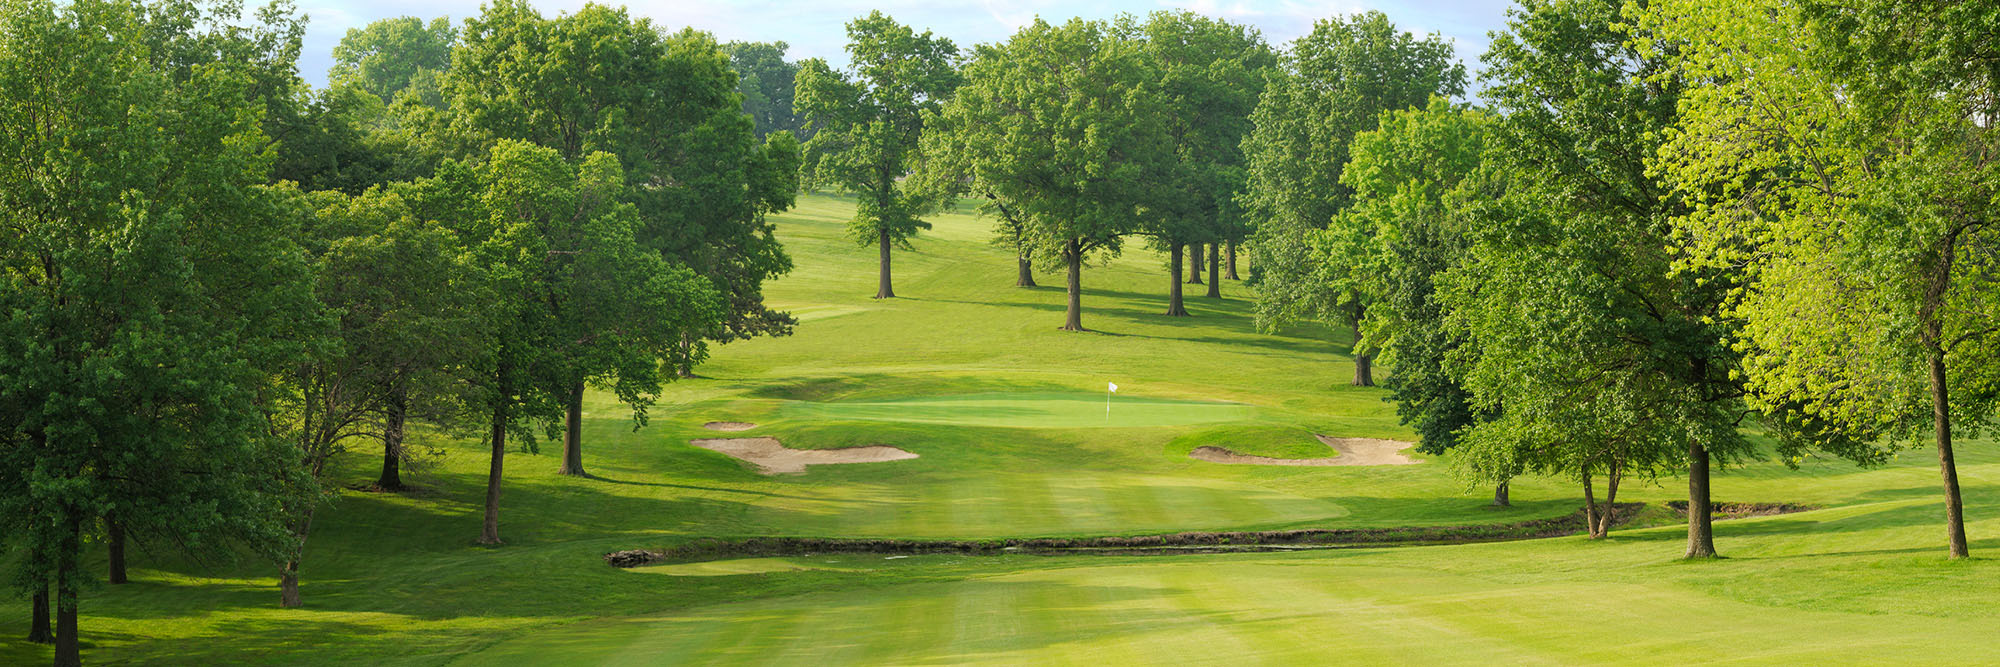 Golf Course Image - Oakwood Country Club No. 17